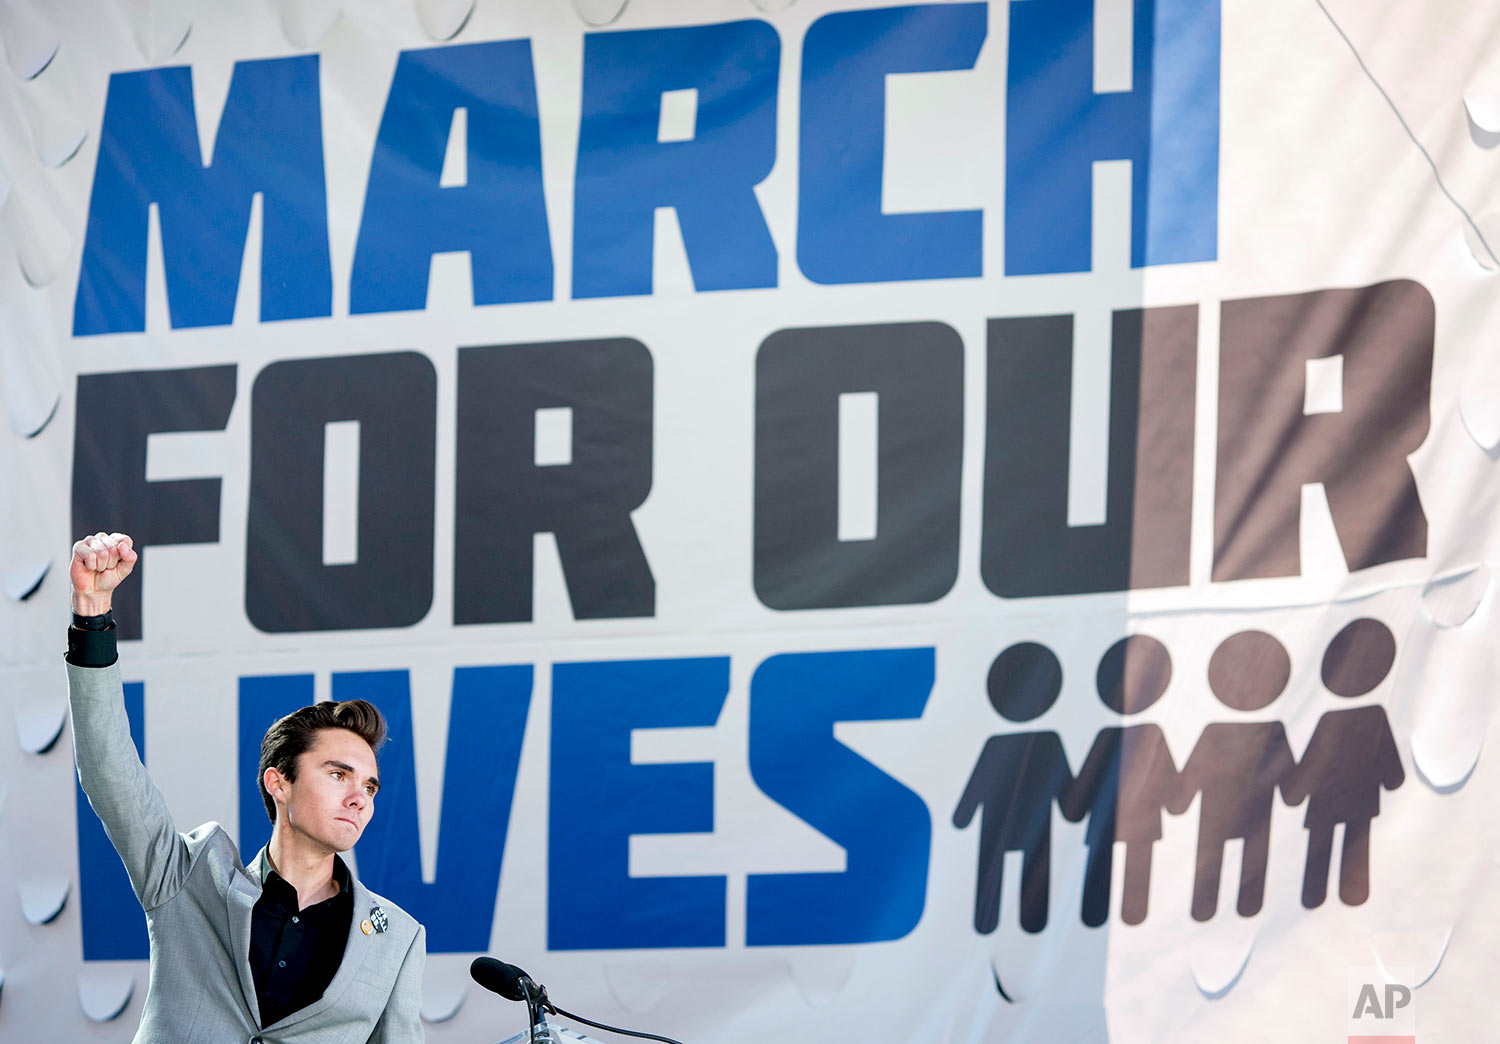 """David Hogg, a survivor of the mass shooting at Marjory Stoneman Douglas High School in Parkland, Fla., raises his fist after speaking during the """"March for Our Lives"""" rally in support of gun control in Washington, Saturday, March 24, 2018. (AP Photo/Andrew Harnik)"""